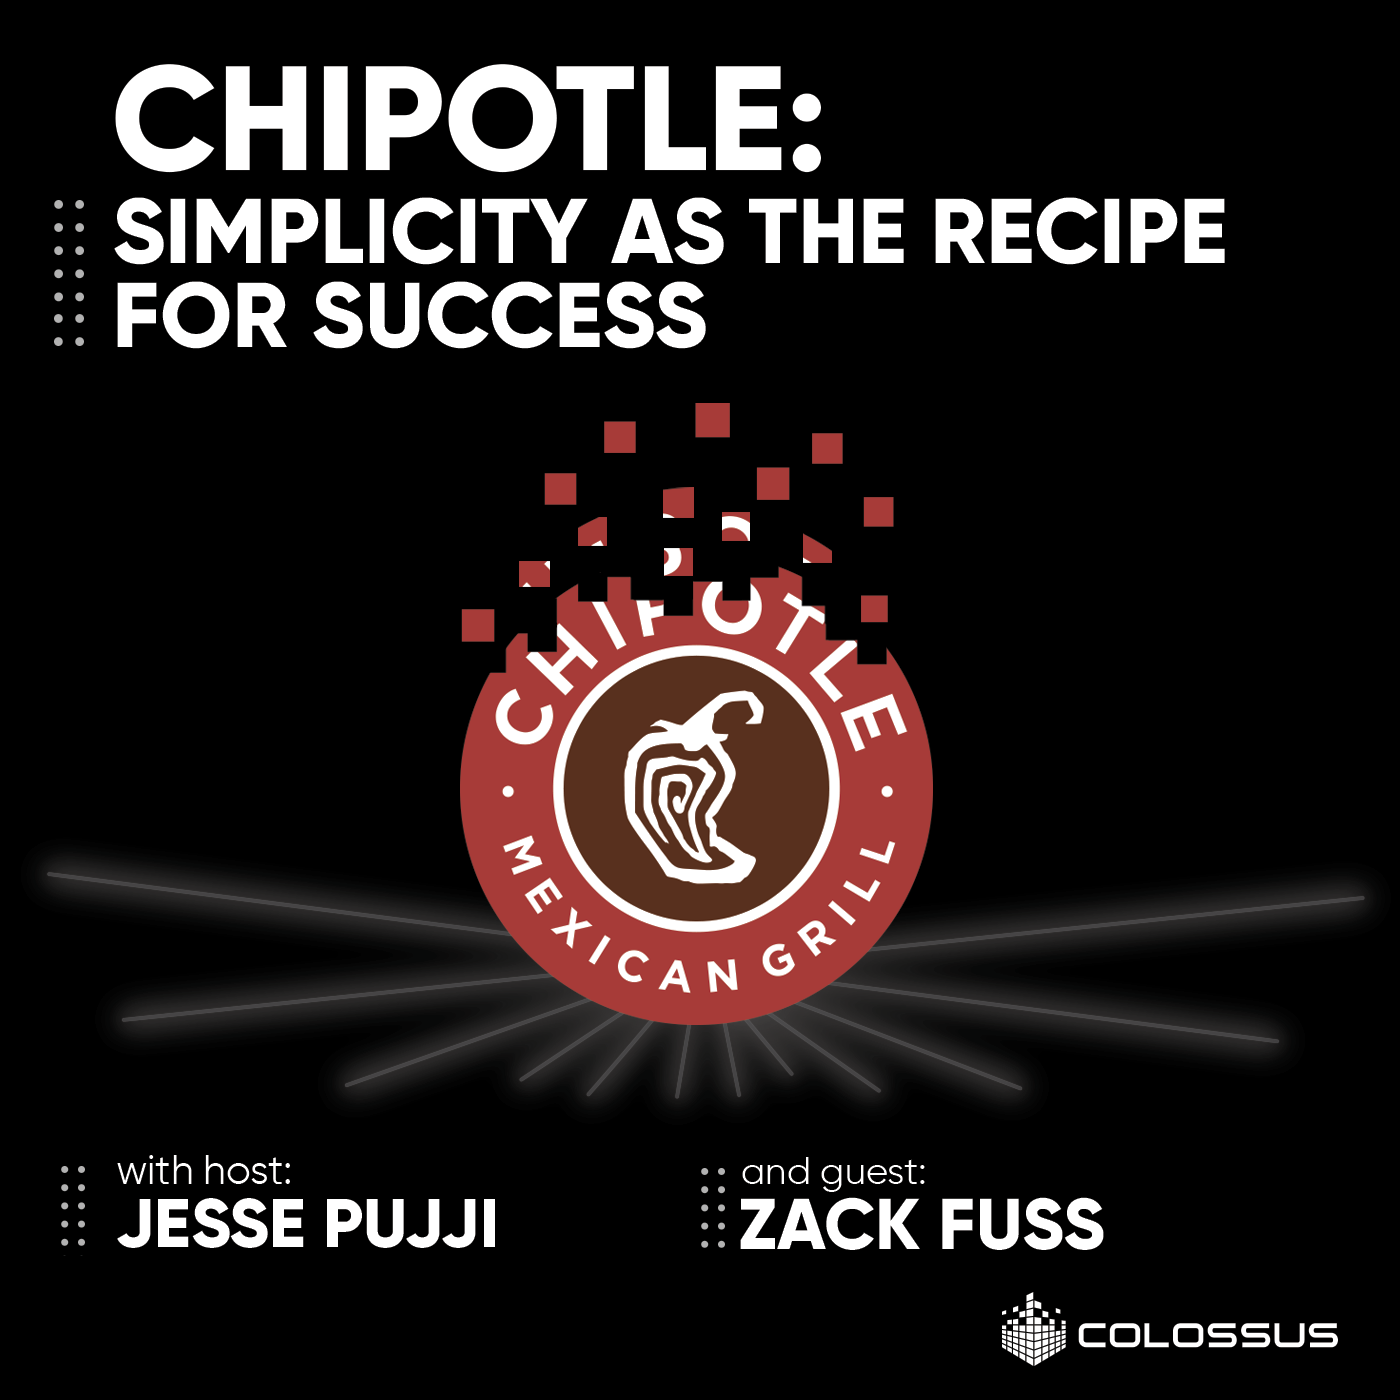 Chipotle: Simplicity as the Recipe for Success